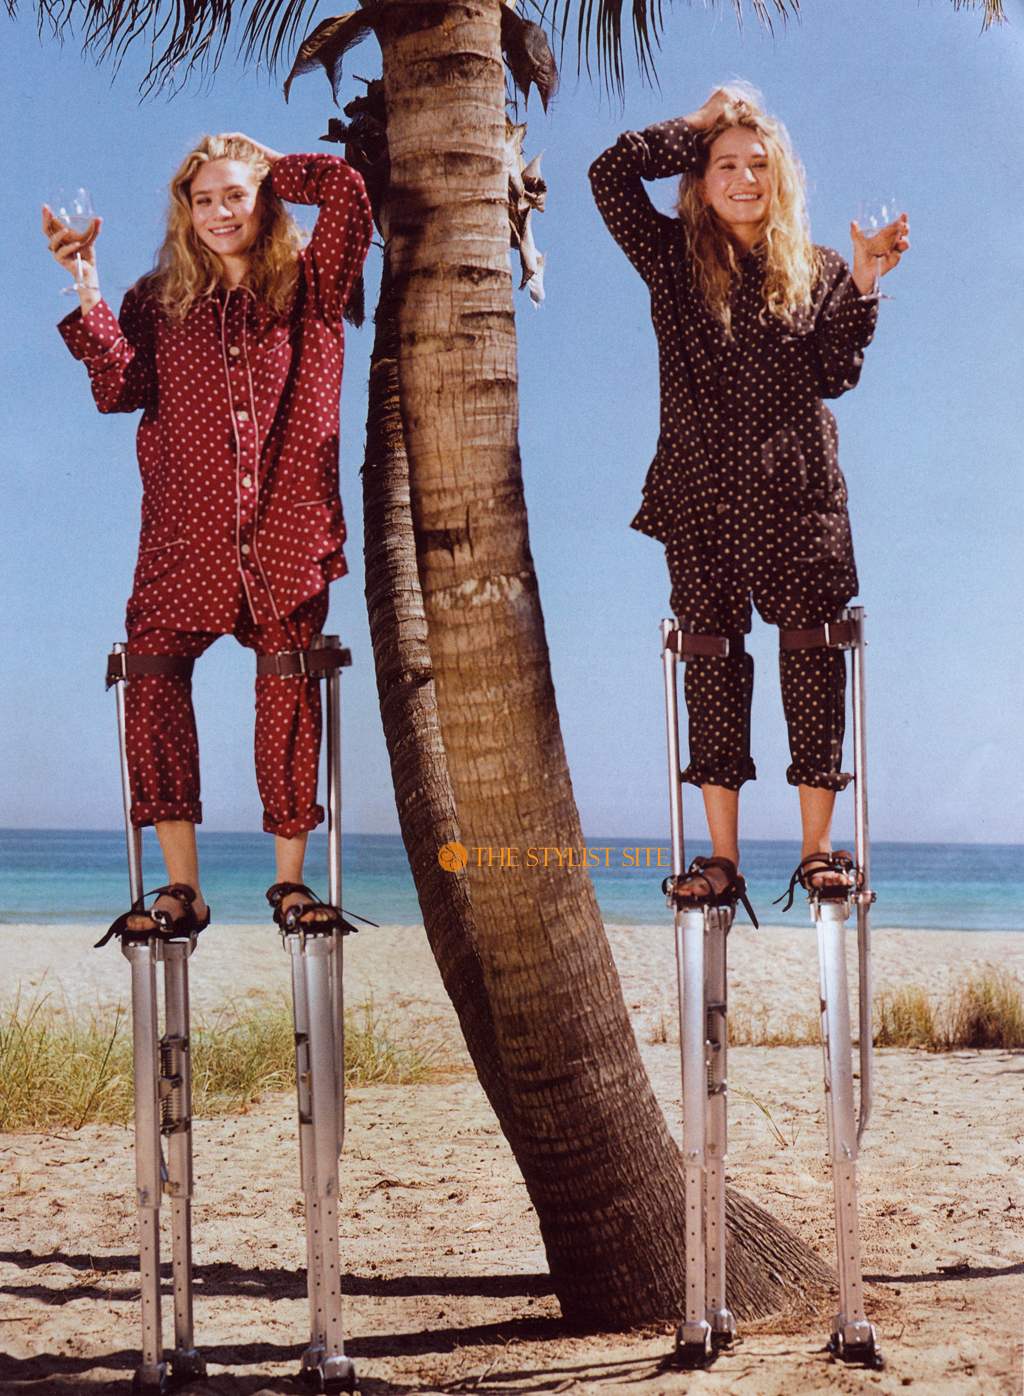 http://1.bp.blogspot.com/-4g5zEiSaJfM/TxCP7y-WPVI/AAAAAAAAAS0/Kf5P23AaIXY/s1600/vogue-us-april-2011-mary-kate-and-ashley-olsen-in-balancing-act.jpg